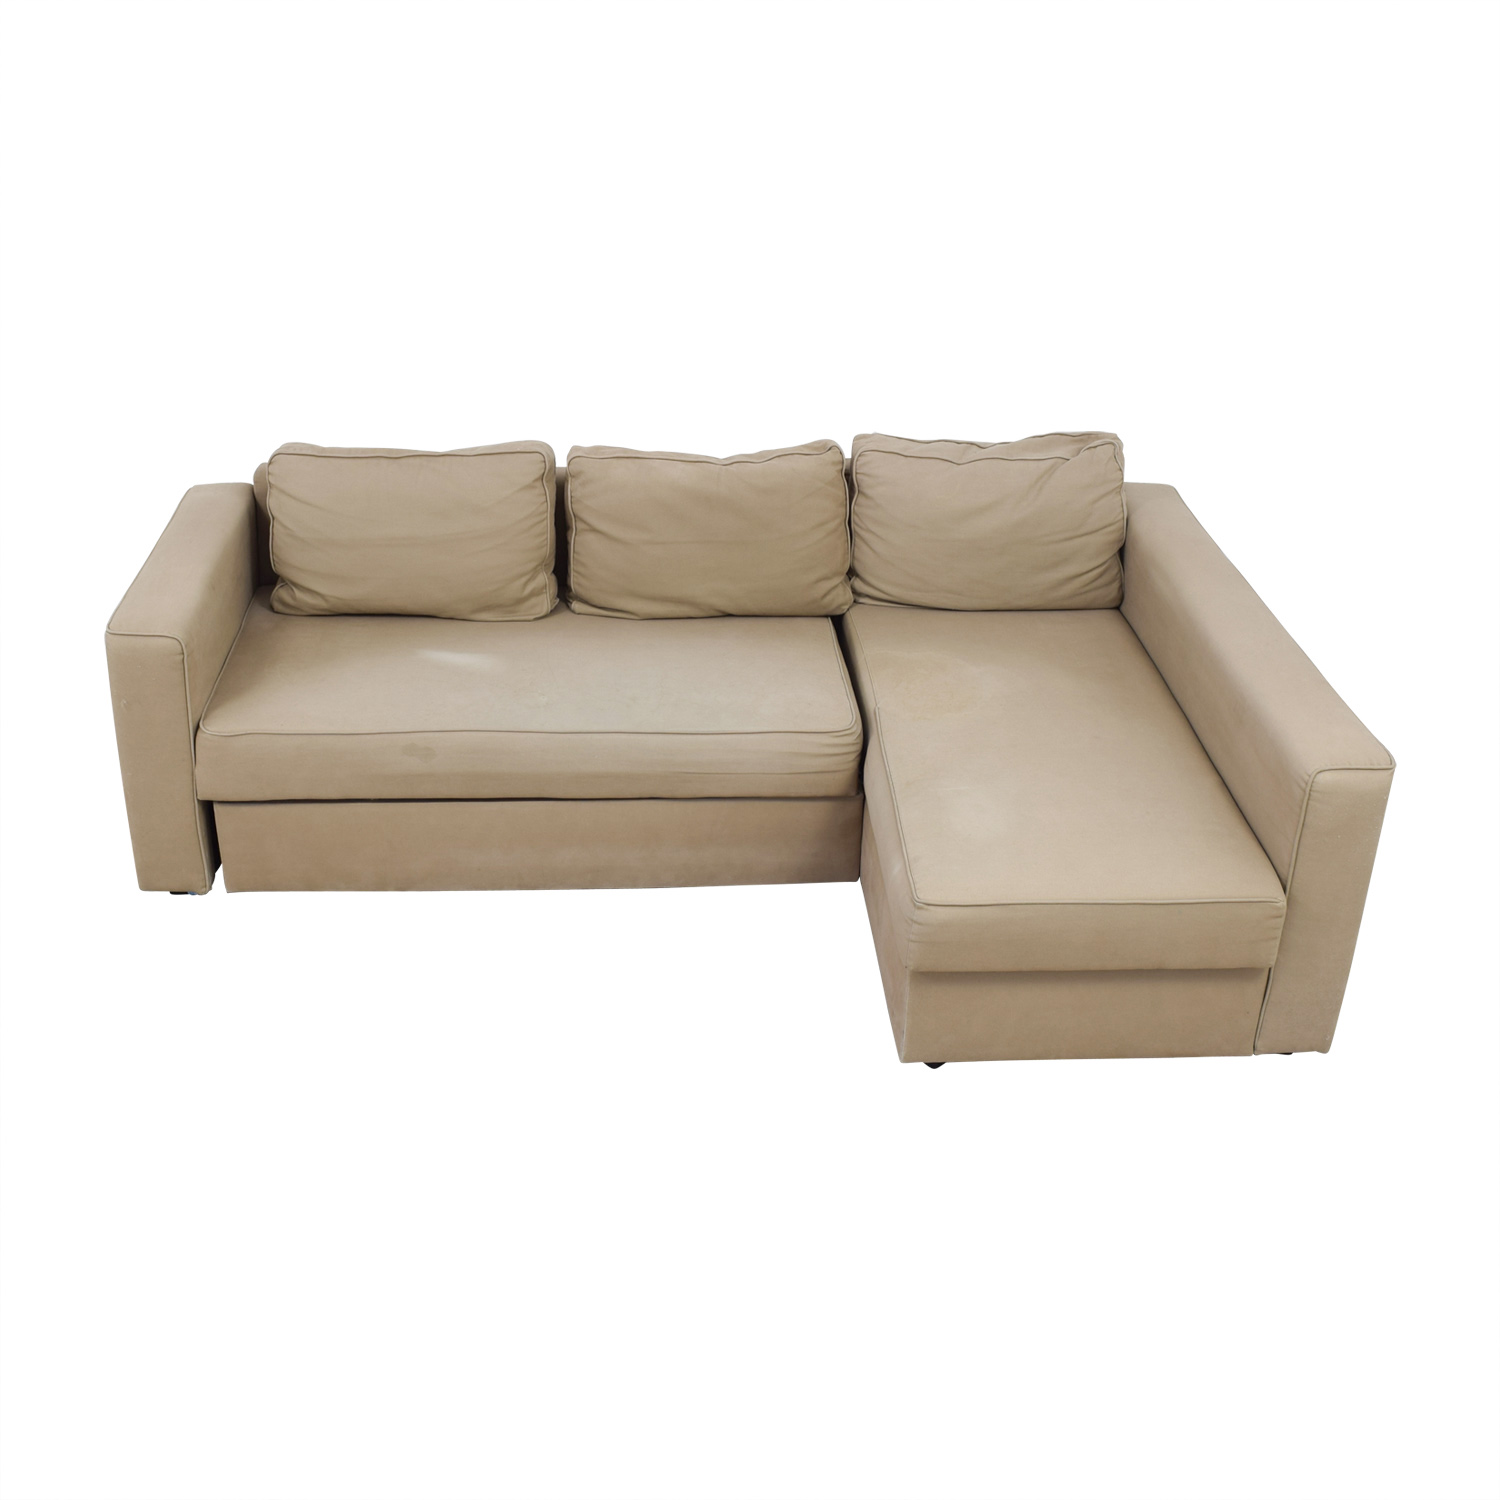 Prime 62 Off Ikea Ikea Manstad Sectional Sofa Bed With Storage Sofas Beutiful Home Inspiration Aditmahrainfo